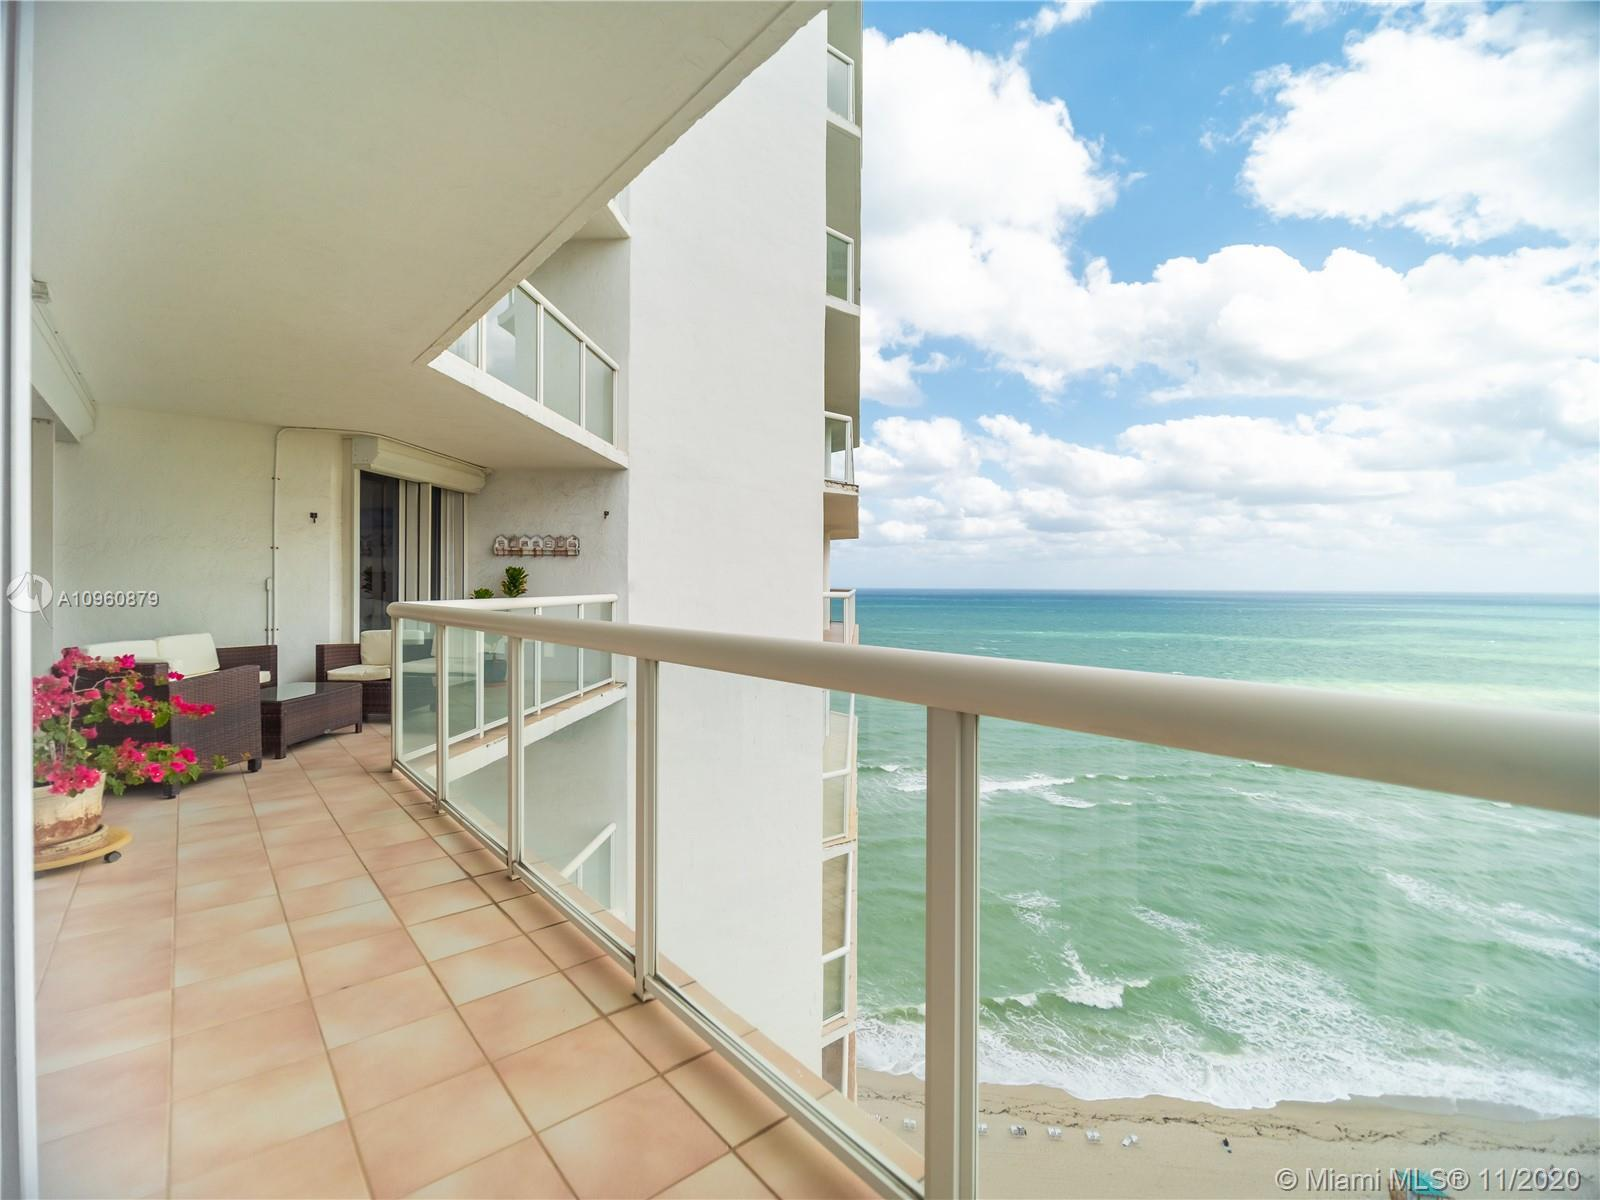 BEAUTIFUL 3 BED/2 BATH BEACH APARTMENT WITH GORGEOUS OCEAN VIEW IN OCEANIA I CONDO. 5 STAR AMENITIES